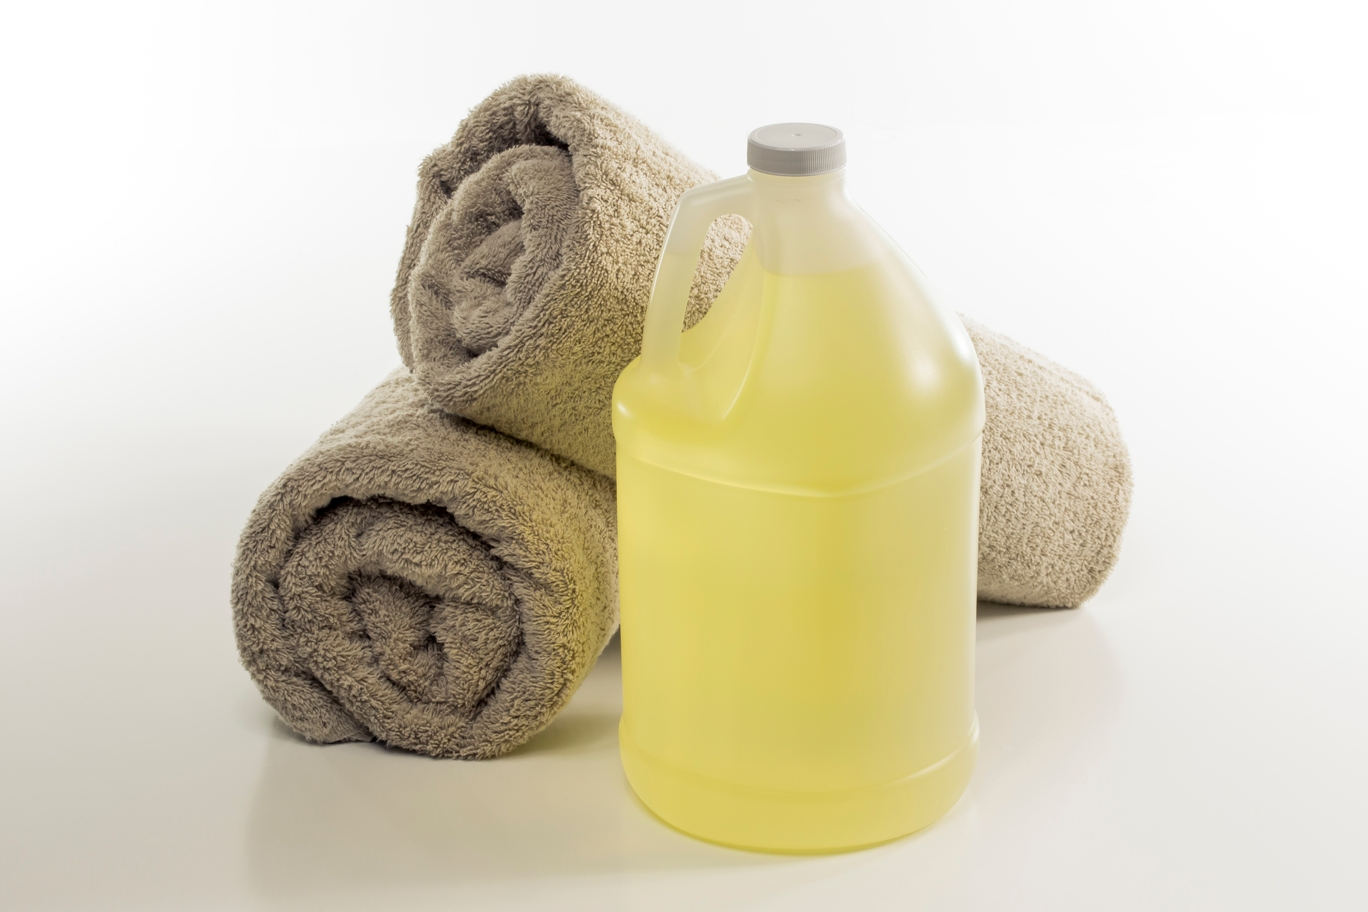 Professional Massage Oil - Makes Scents Natural Spa Line